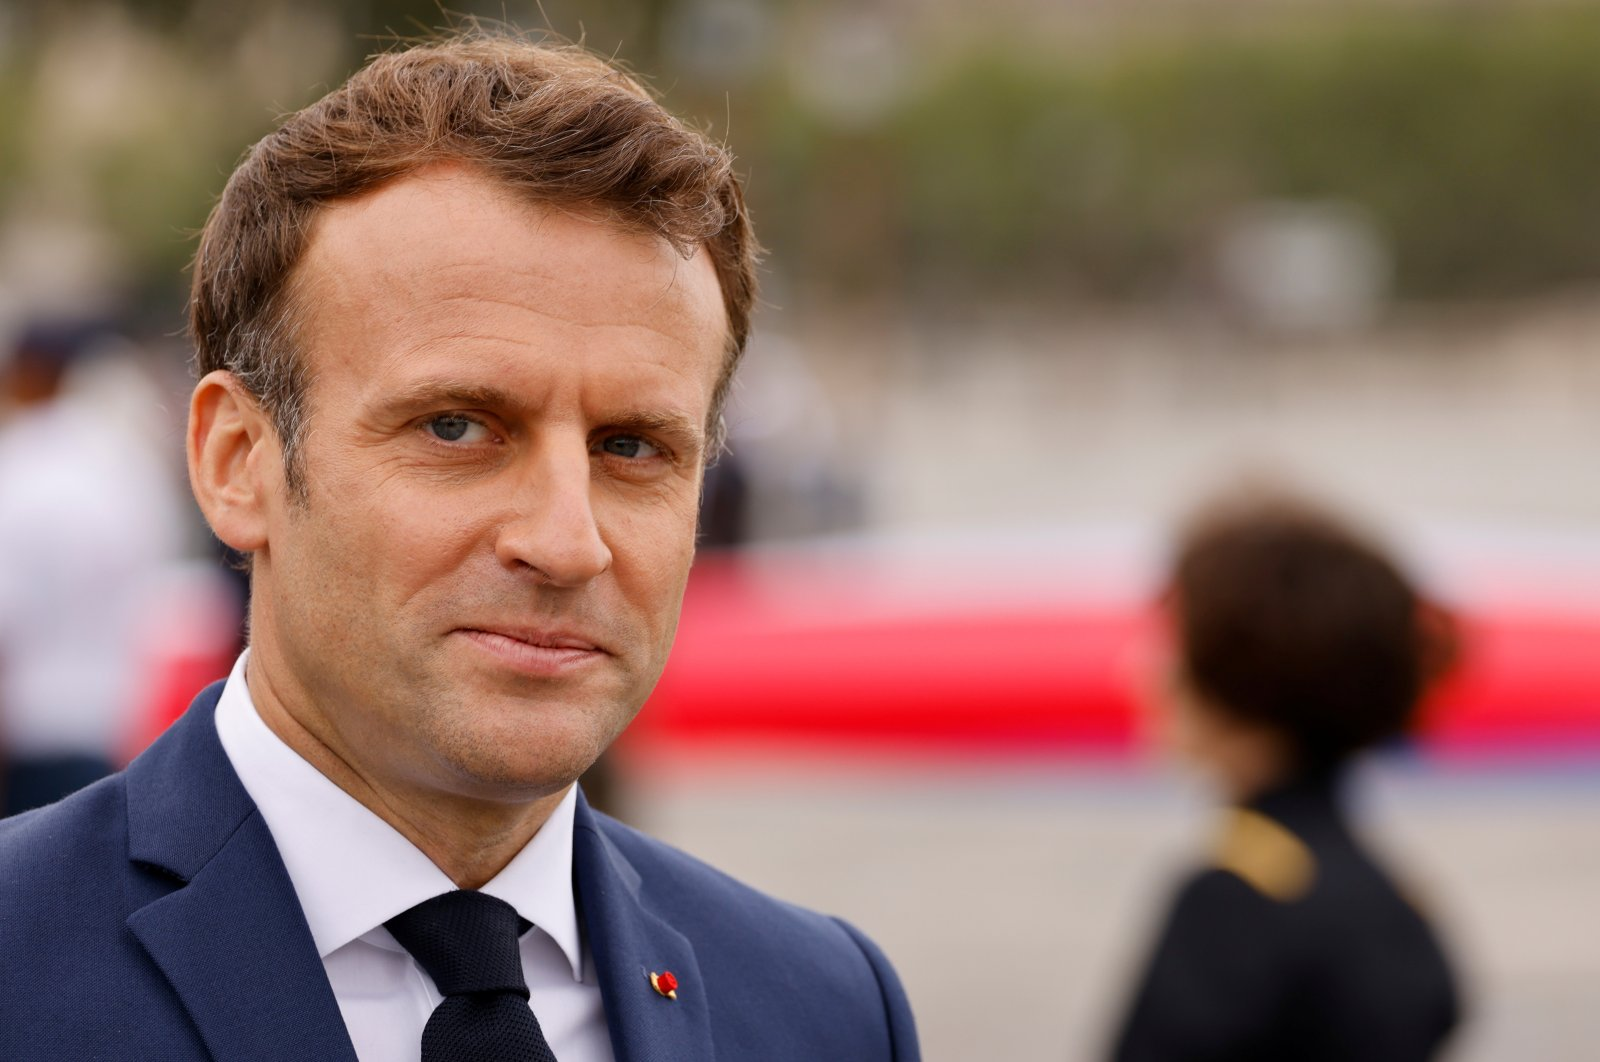 French President Emmanuel Macron attends the annual Bastille Day military parade on the Champs-Elysees avenue in Paris, France, July 14, 2021. (Reuters Photo)